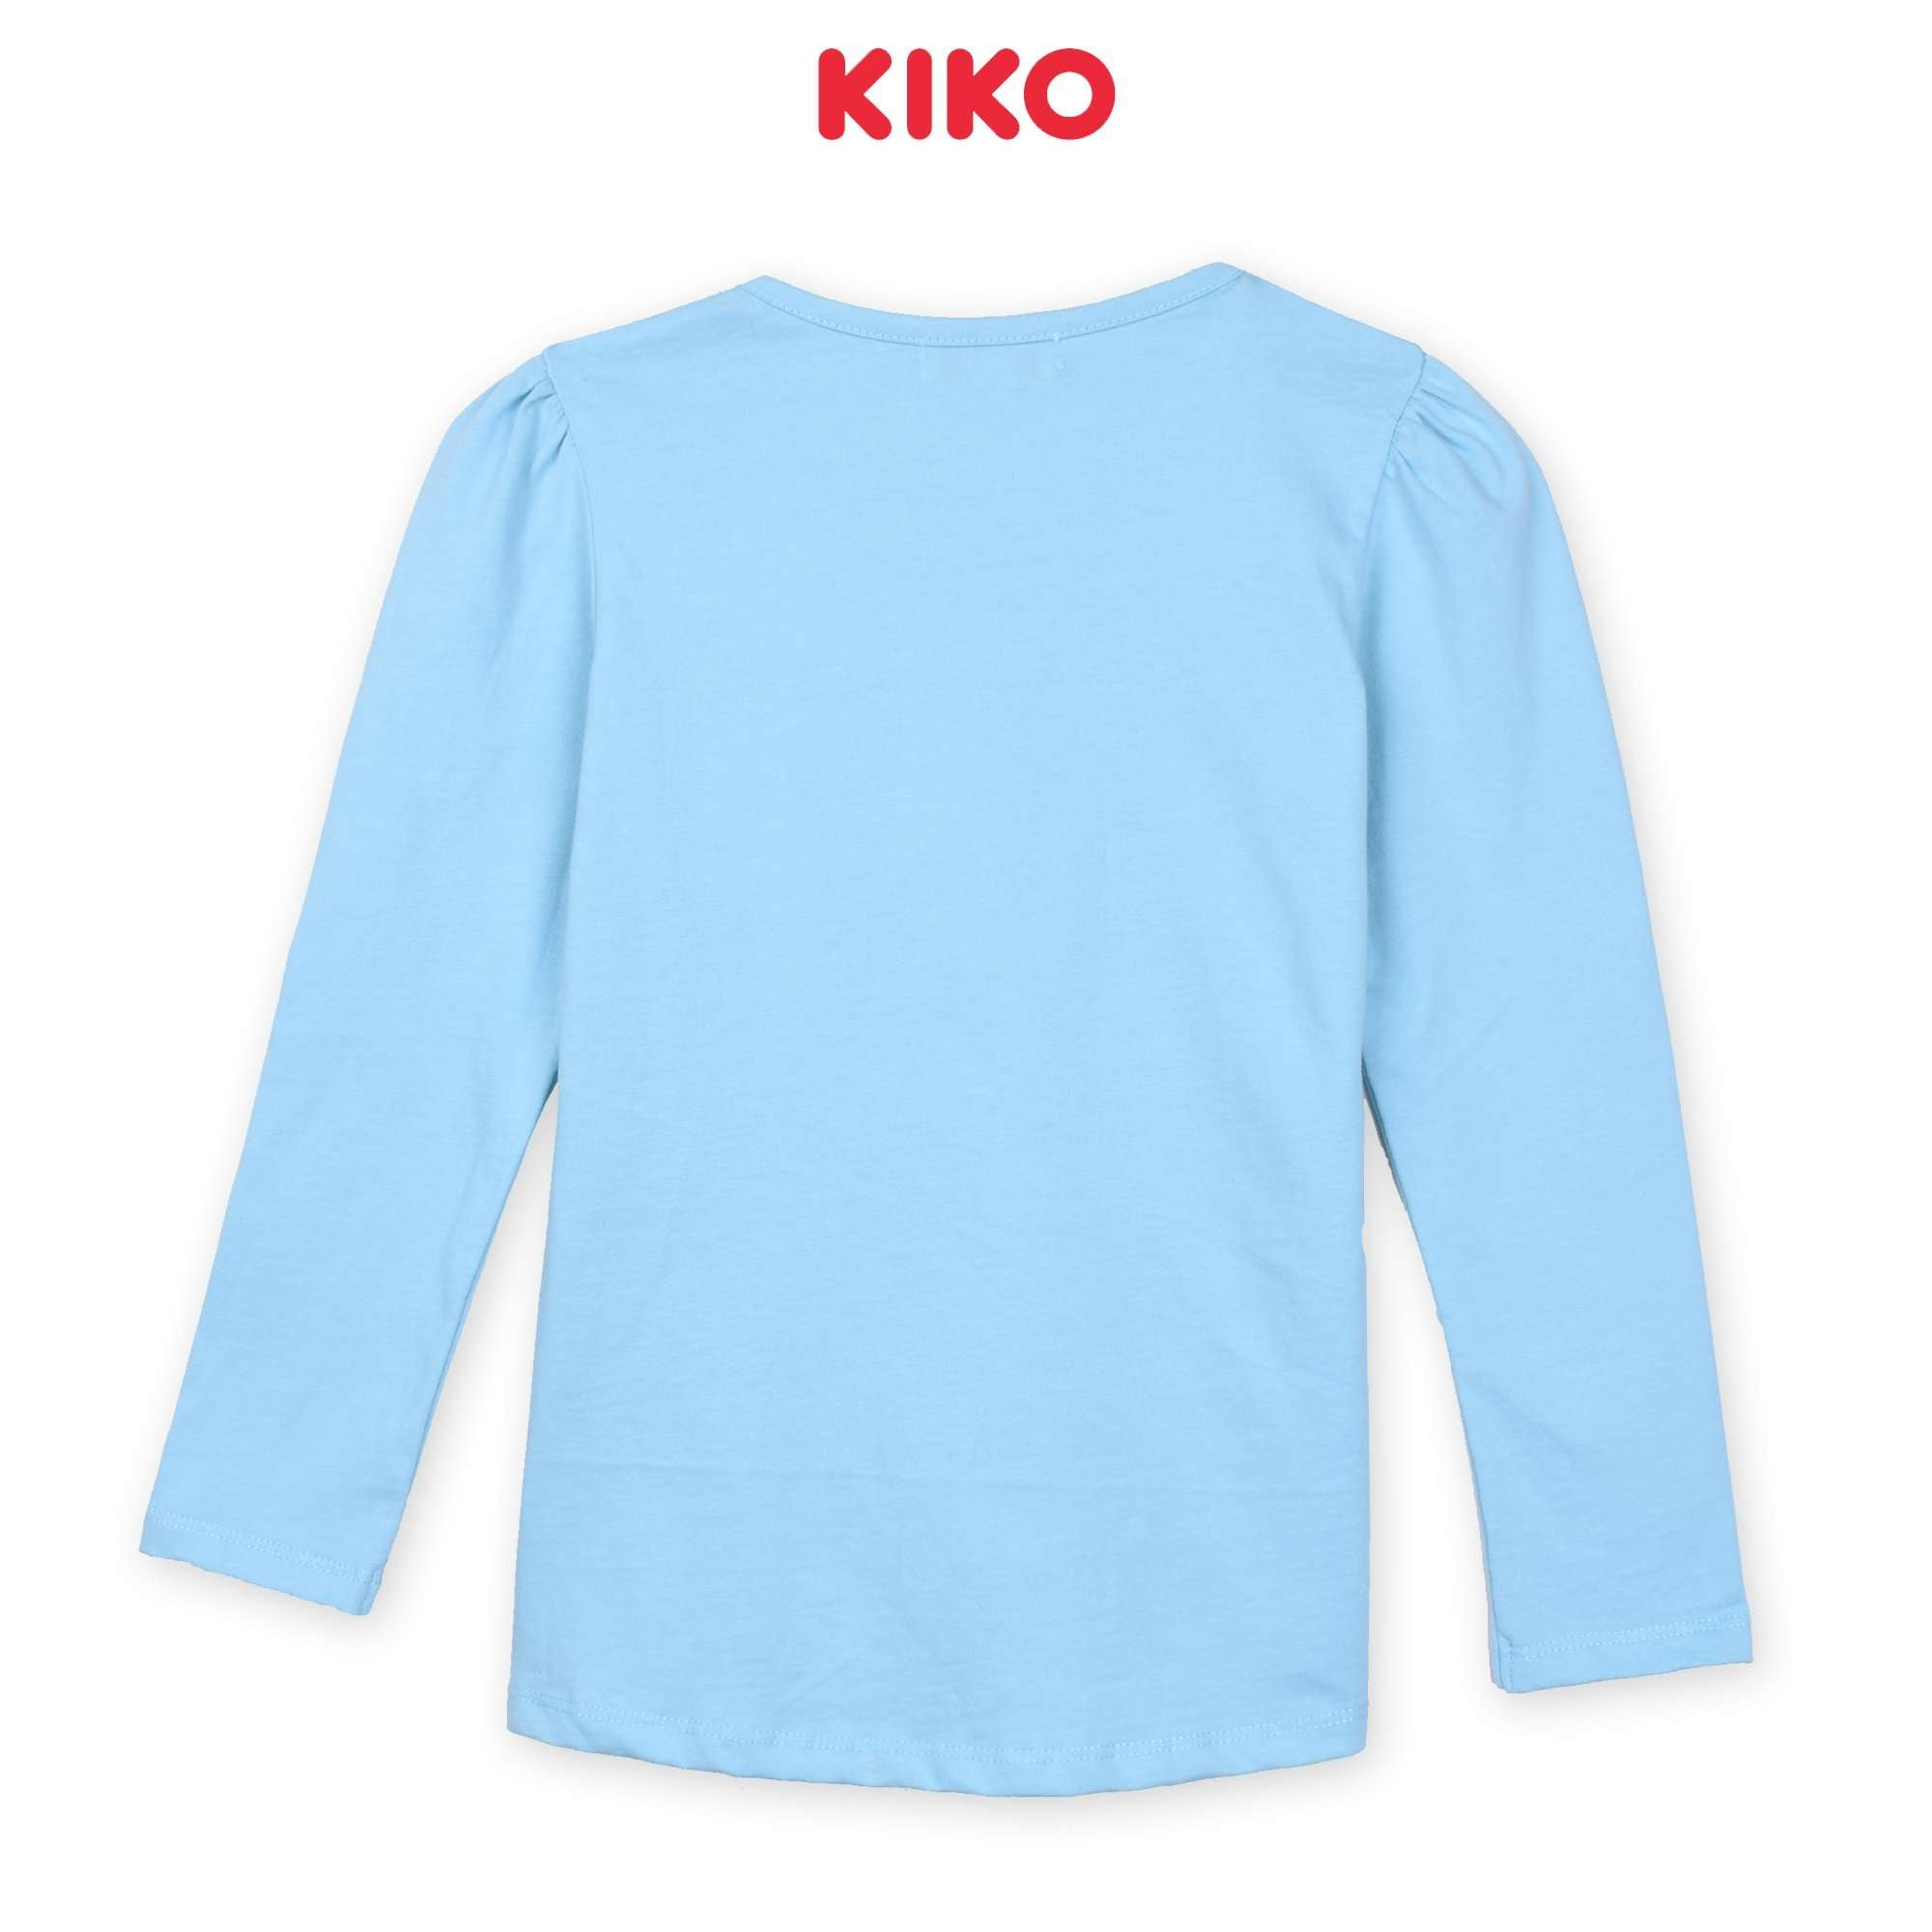 KIKO Girl Long Sleeve Tee - Blue K926103-1340-L5 : Buy KIKO online at CMG.MY